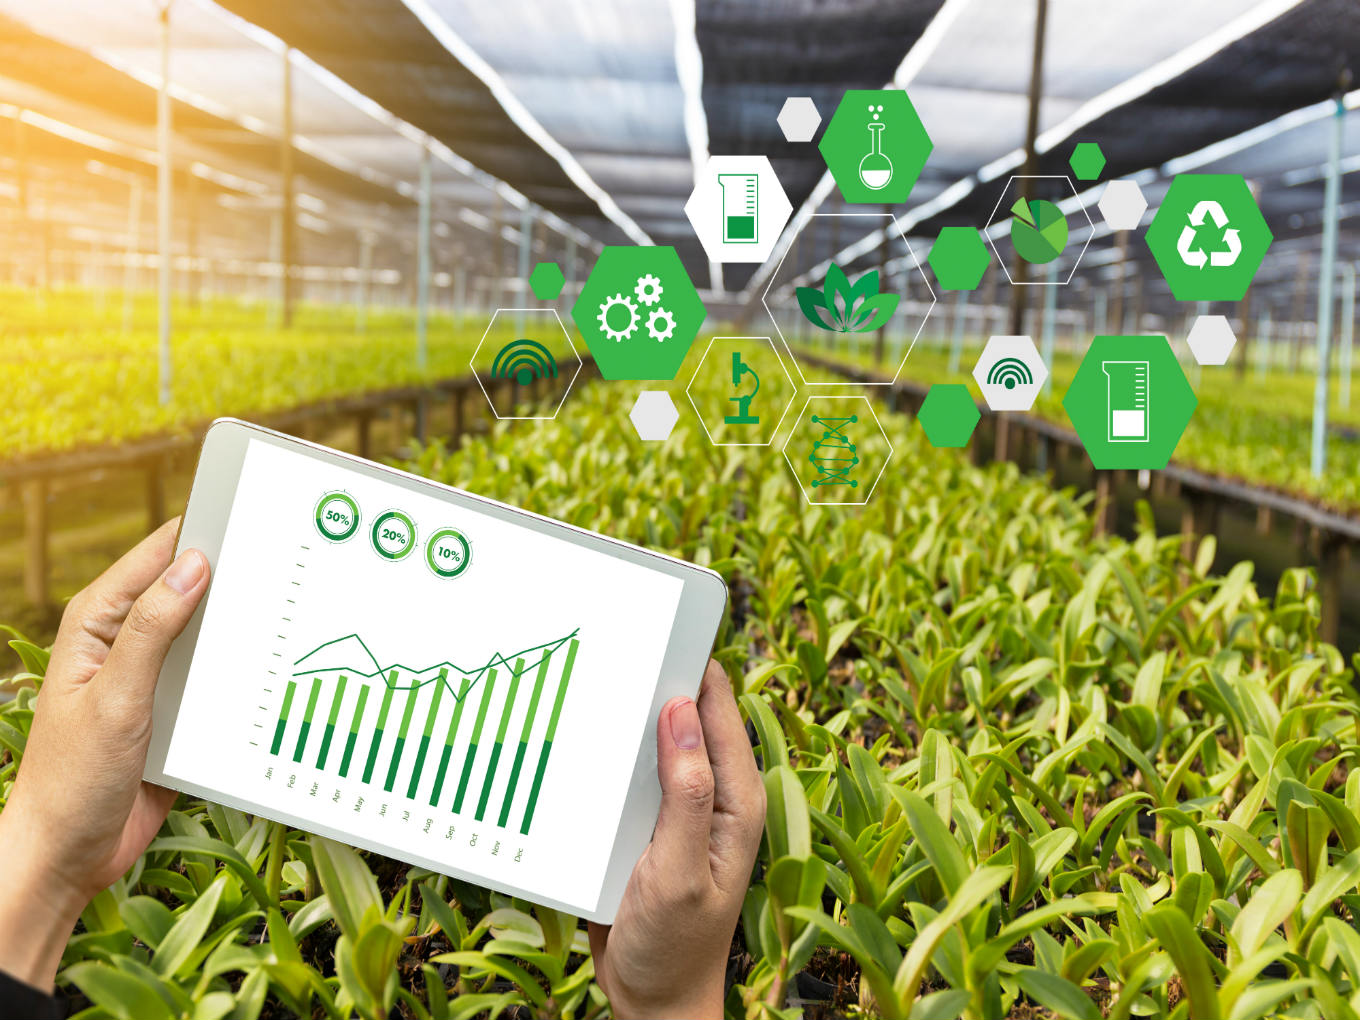 Cisco Join Hands with The/Nudge to Mobilize AgriTech Startup Ecosystem in India